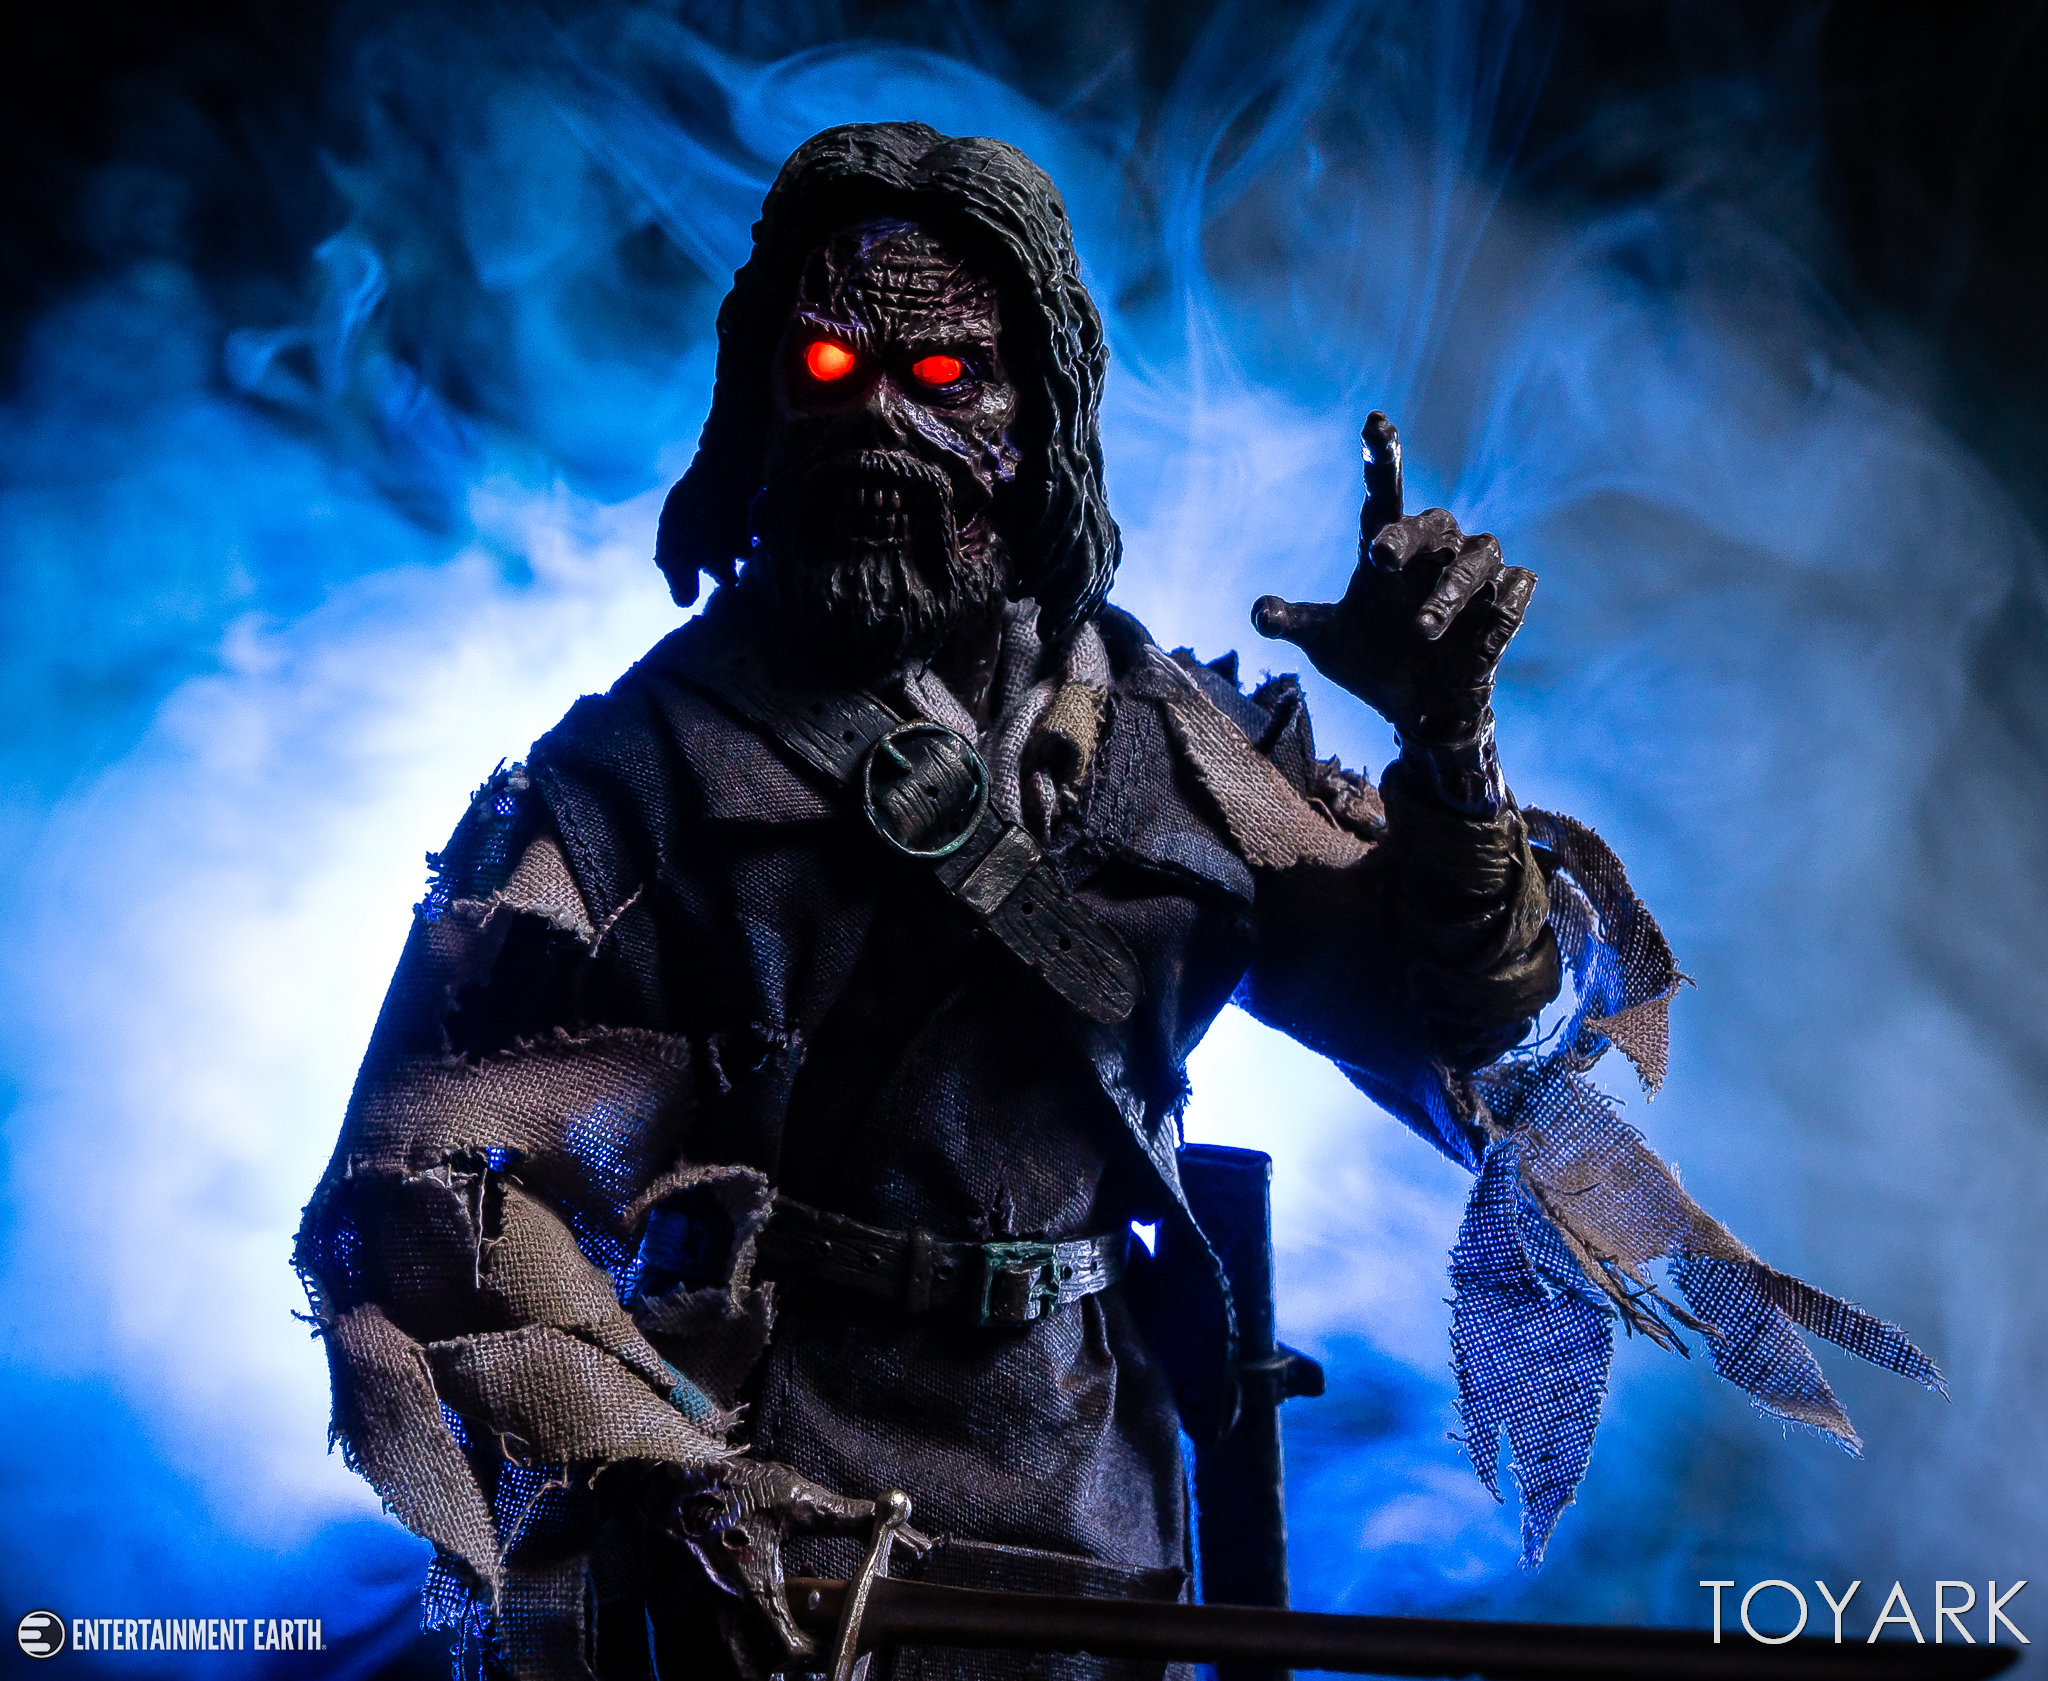 https://news.toyark.com/wp-content/uploads/sites/4/2018/11/NECA-Captain-Blake-The-Fog-029.jpg